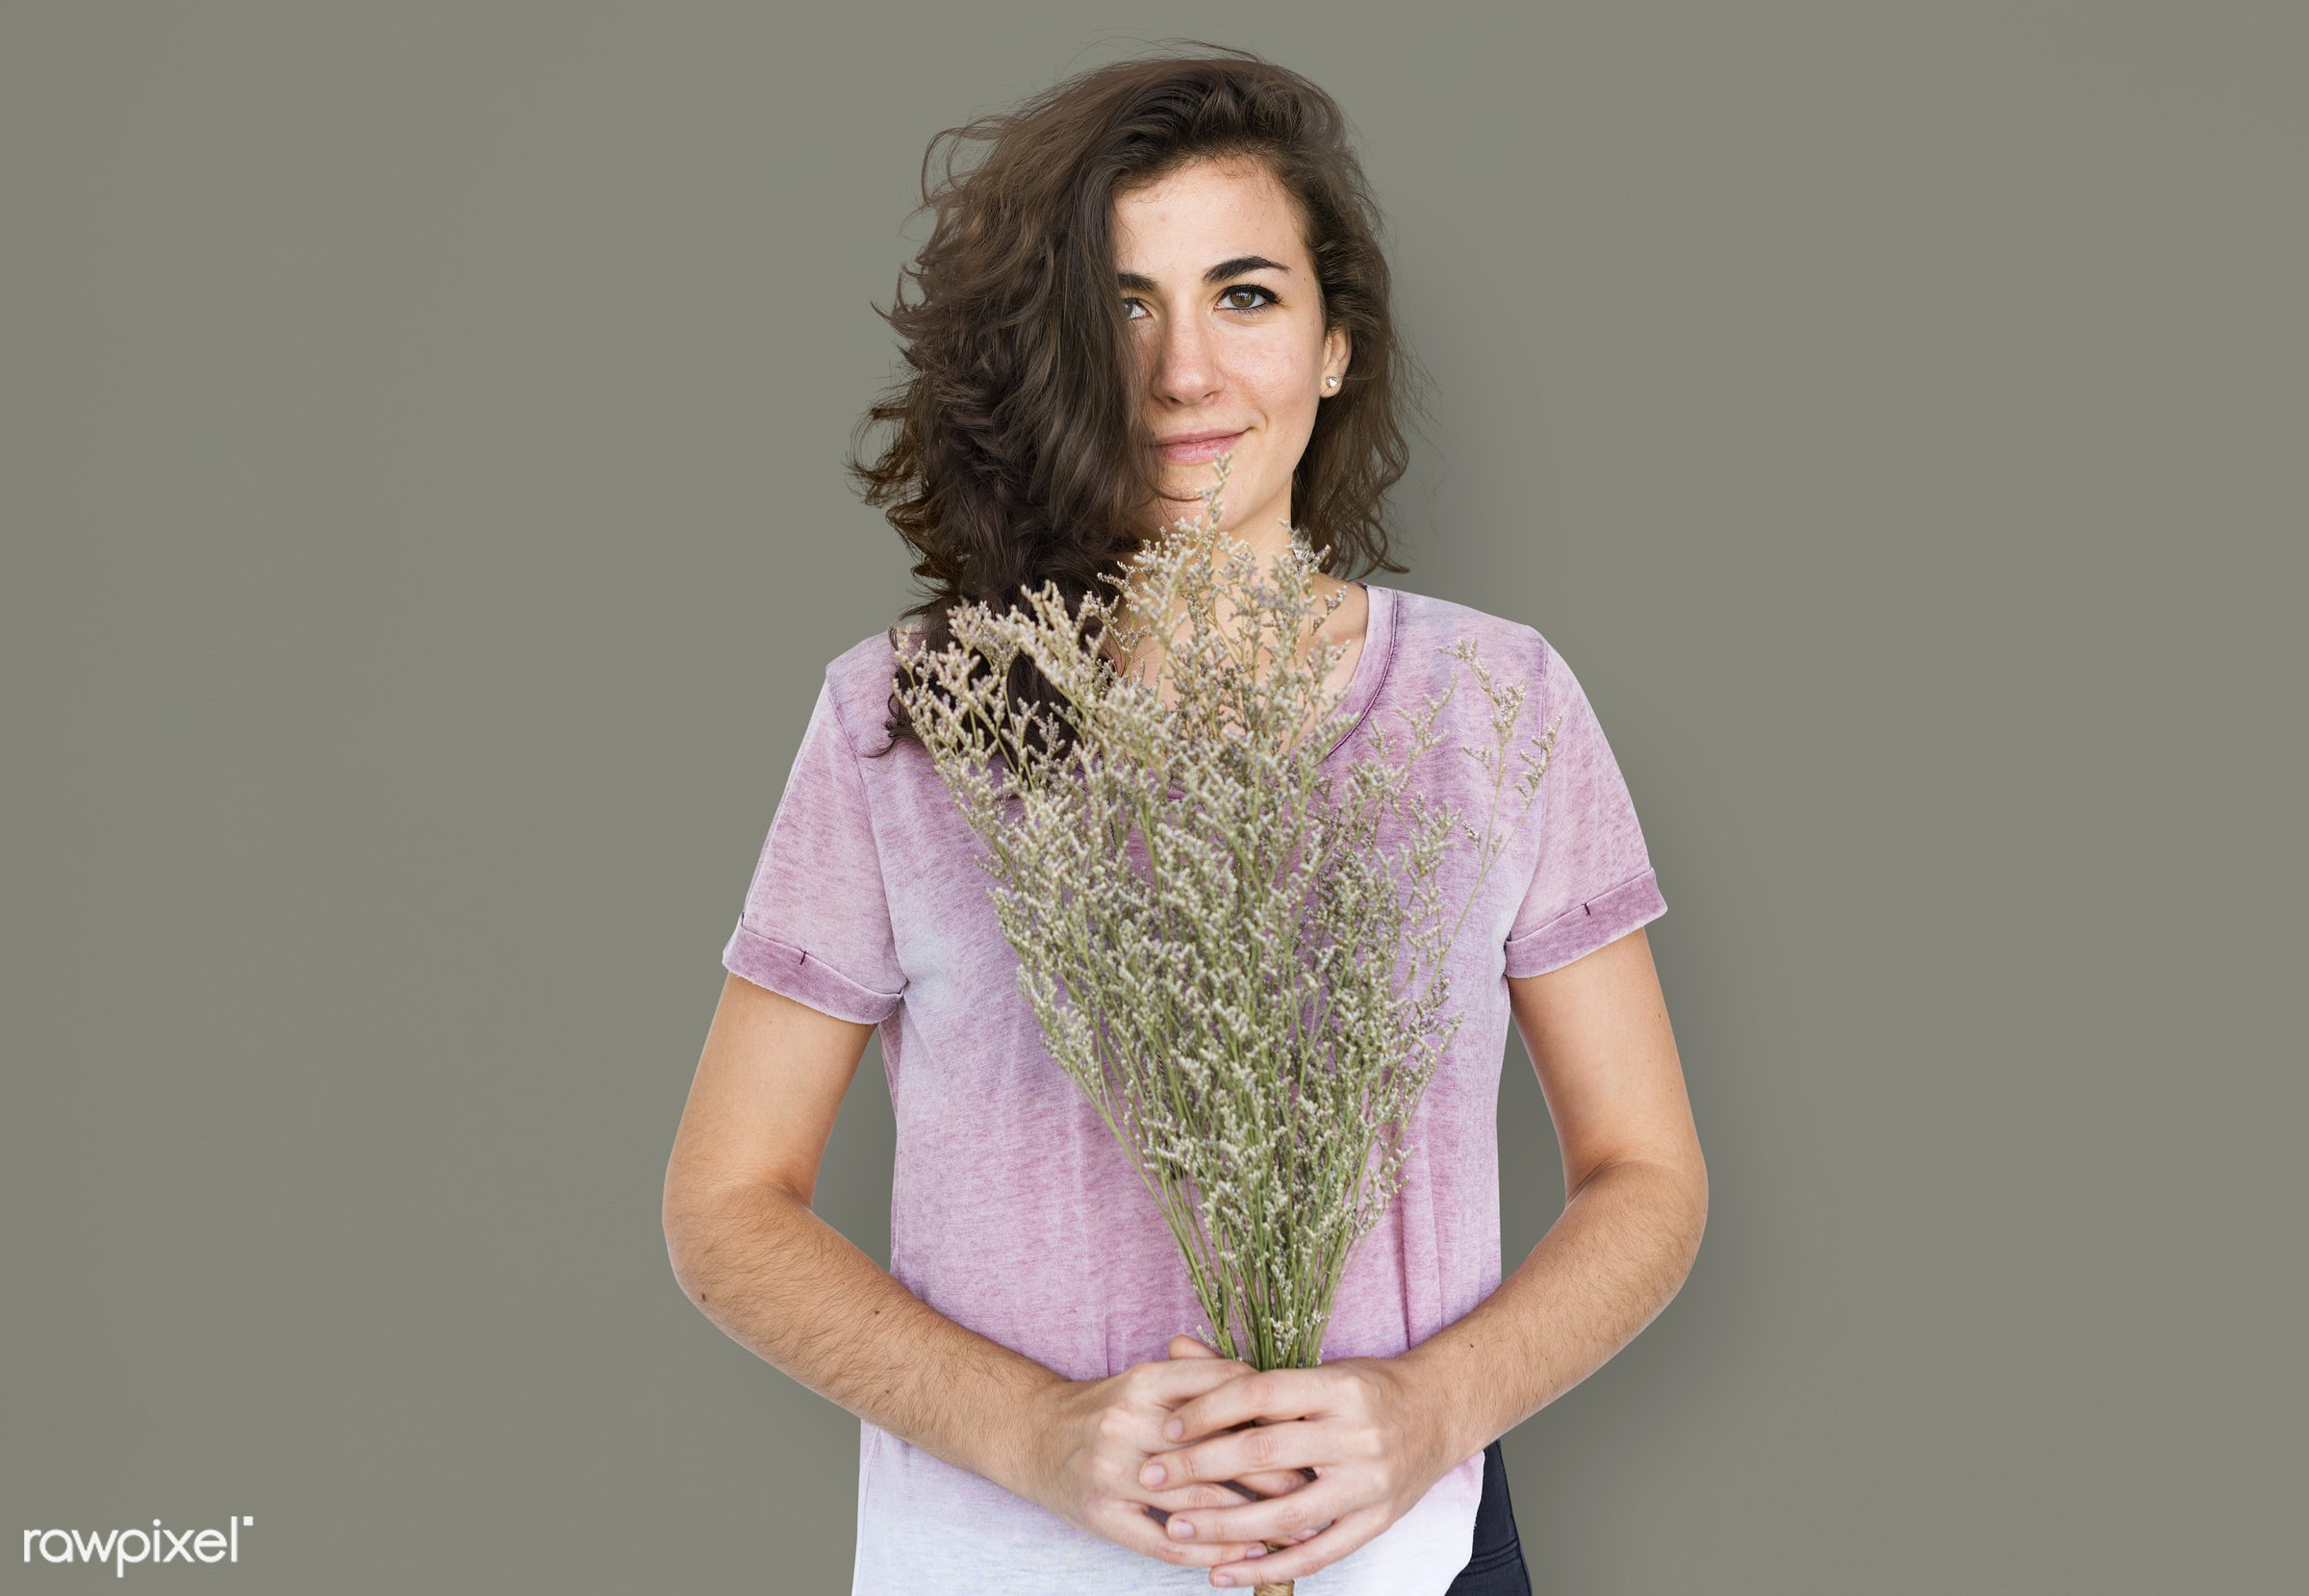 studio, expression, bouquet, face, person, playful, holding, joy, beauty, cute, pretty, people, girl, solo, fresh, happy,...